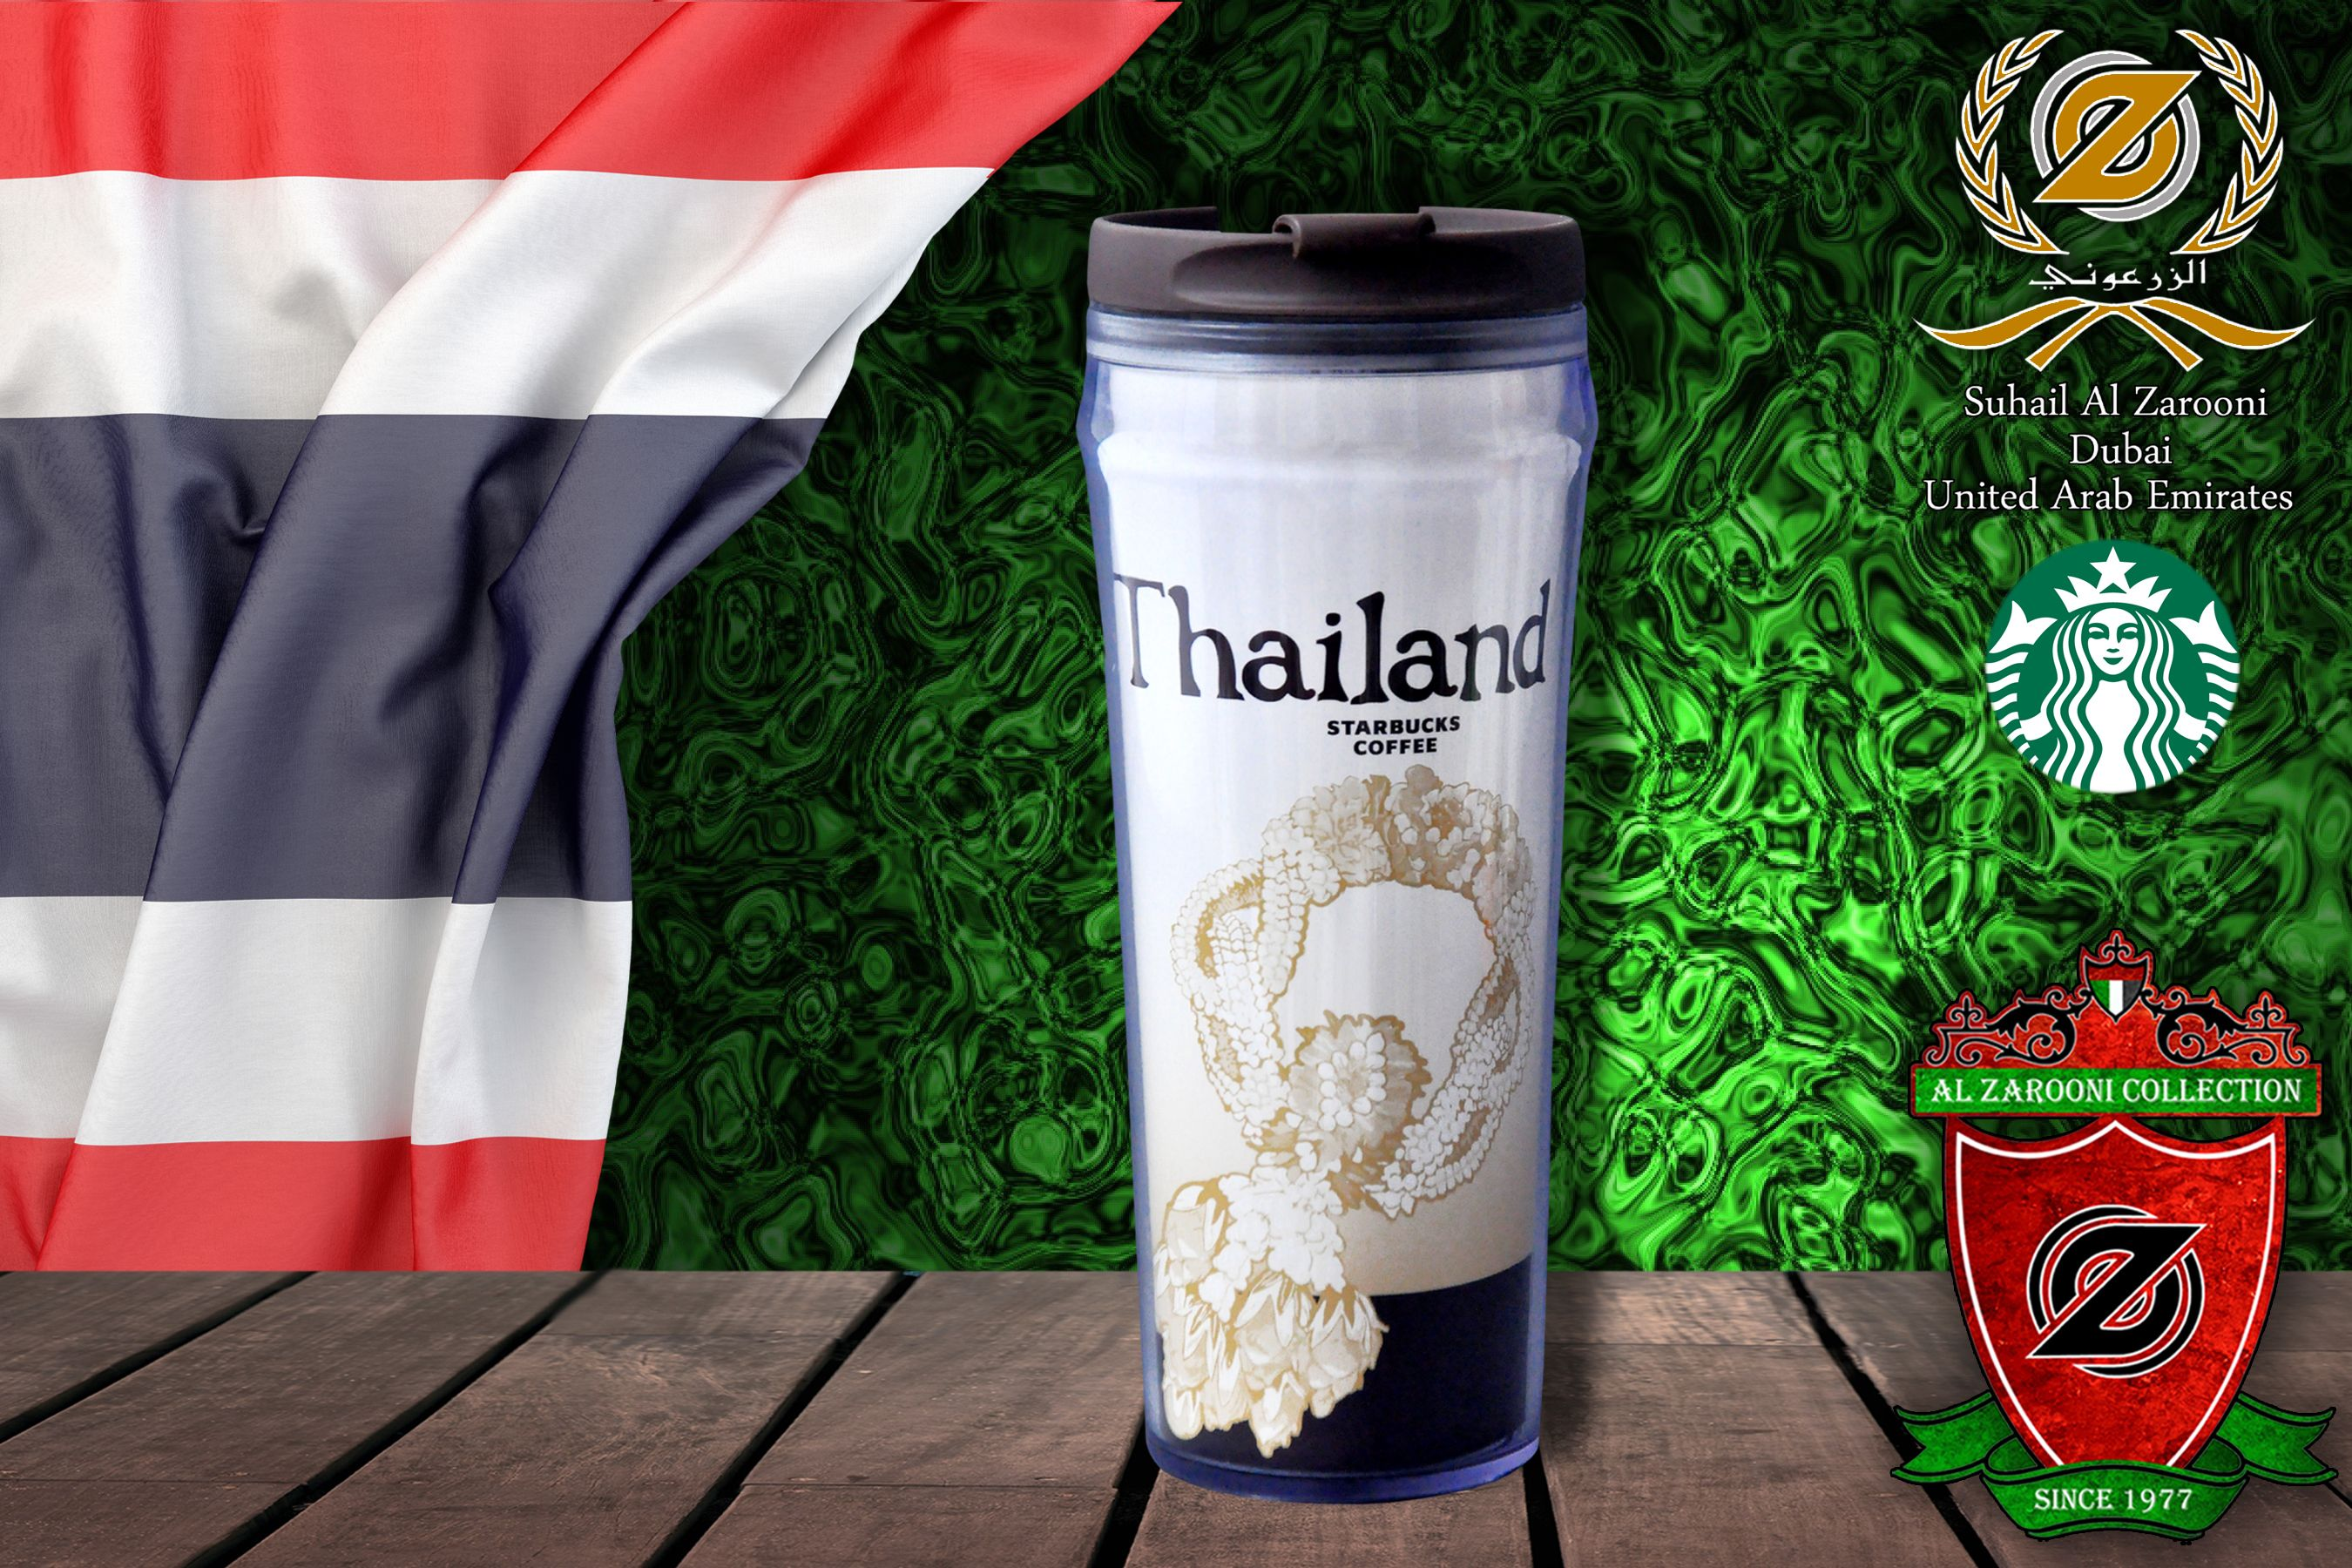 Pin by Al Zarooni Collector on Starbucks City Tumbler